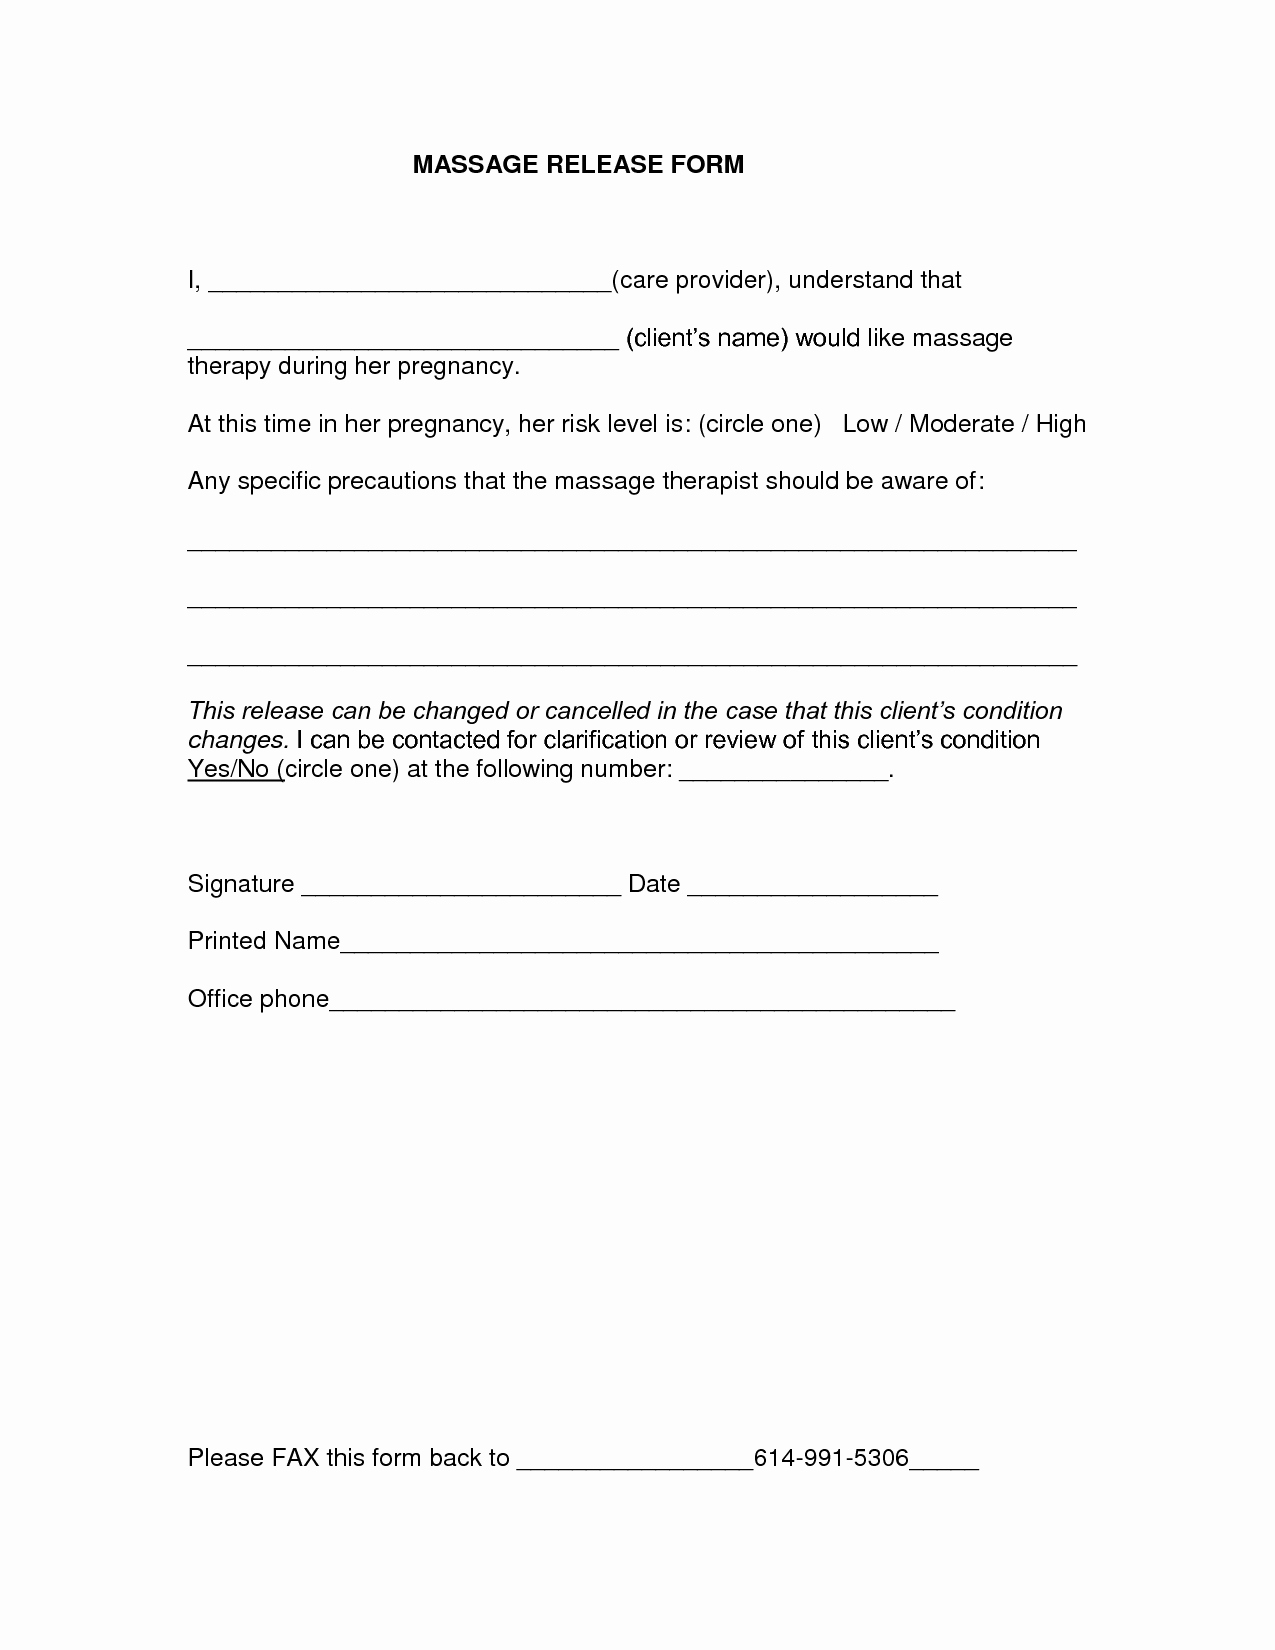 Image Release form Template Fresh Medical Release form – Templates Free Printable